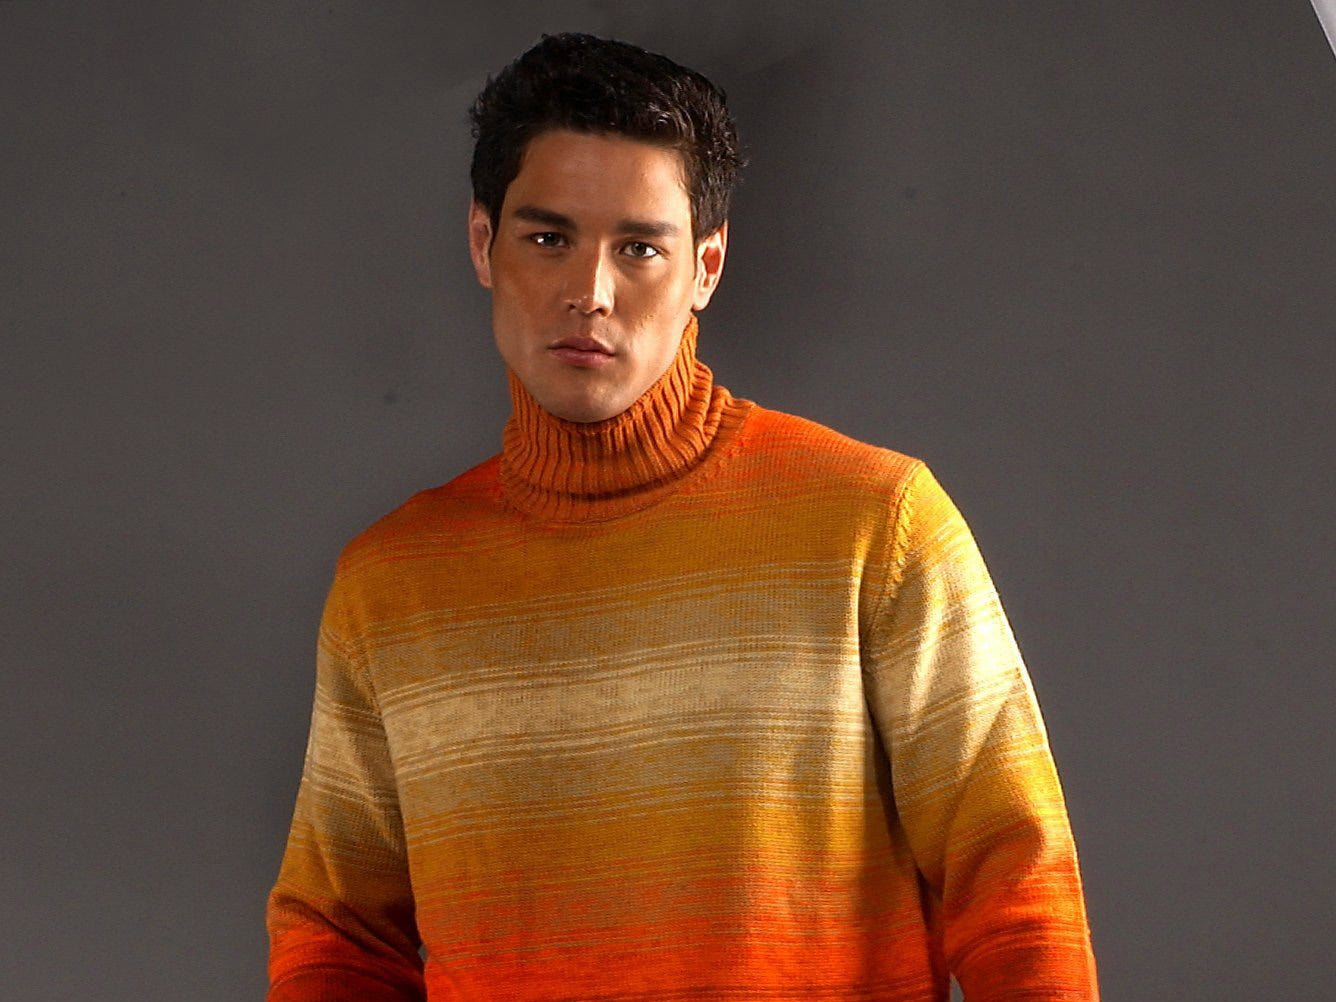 Striped turtleneck sweater and cotton pants.